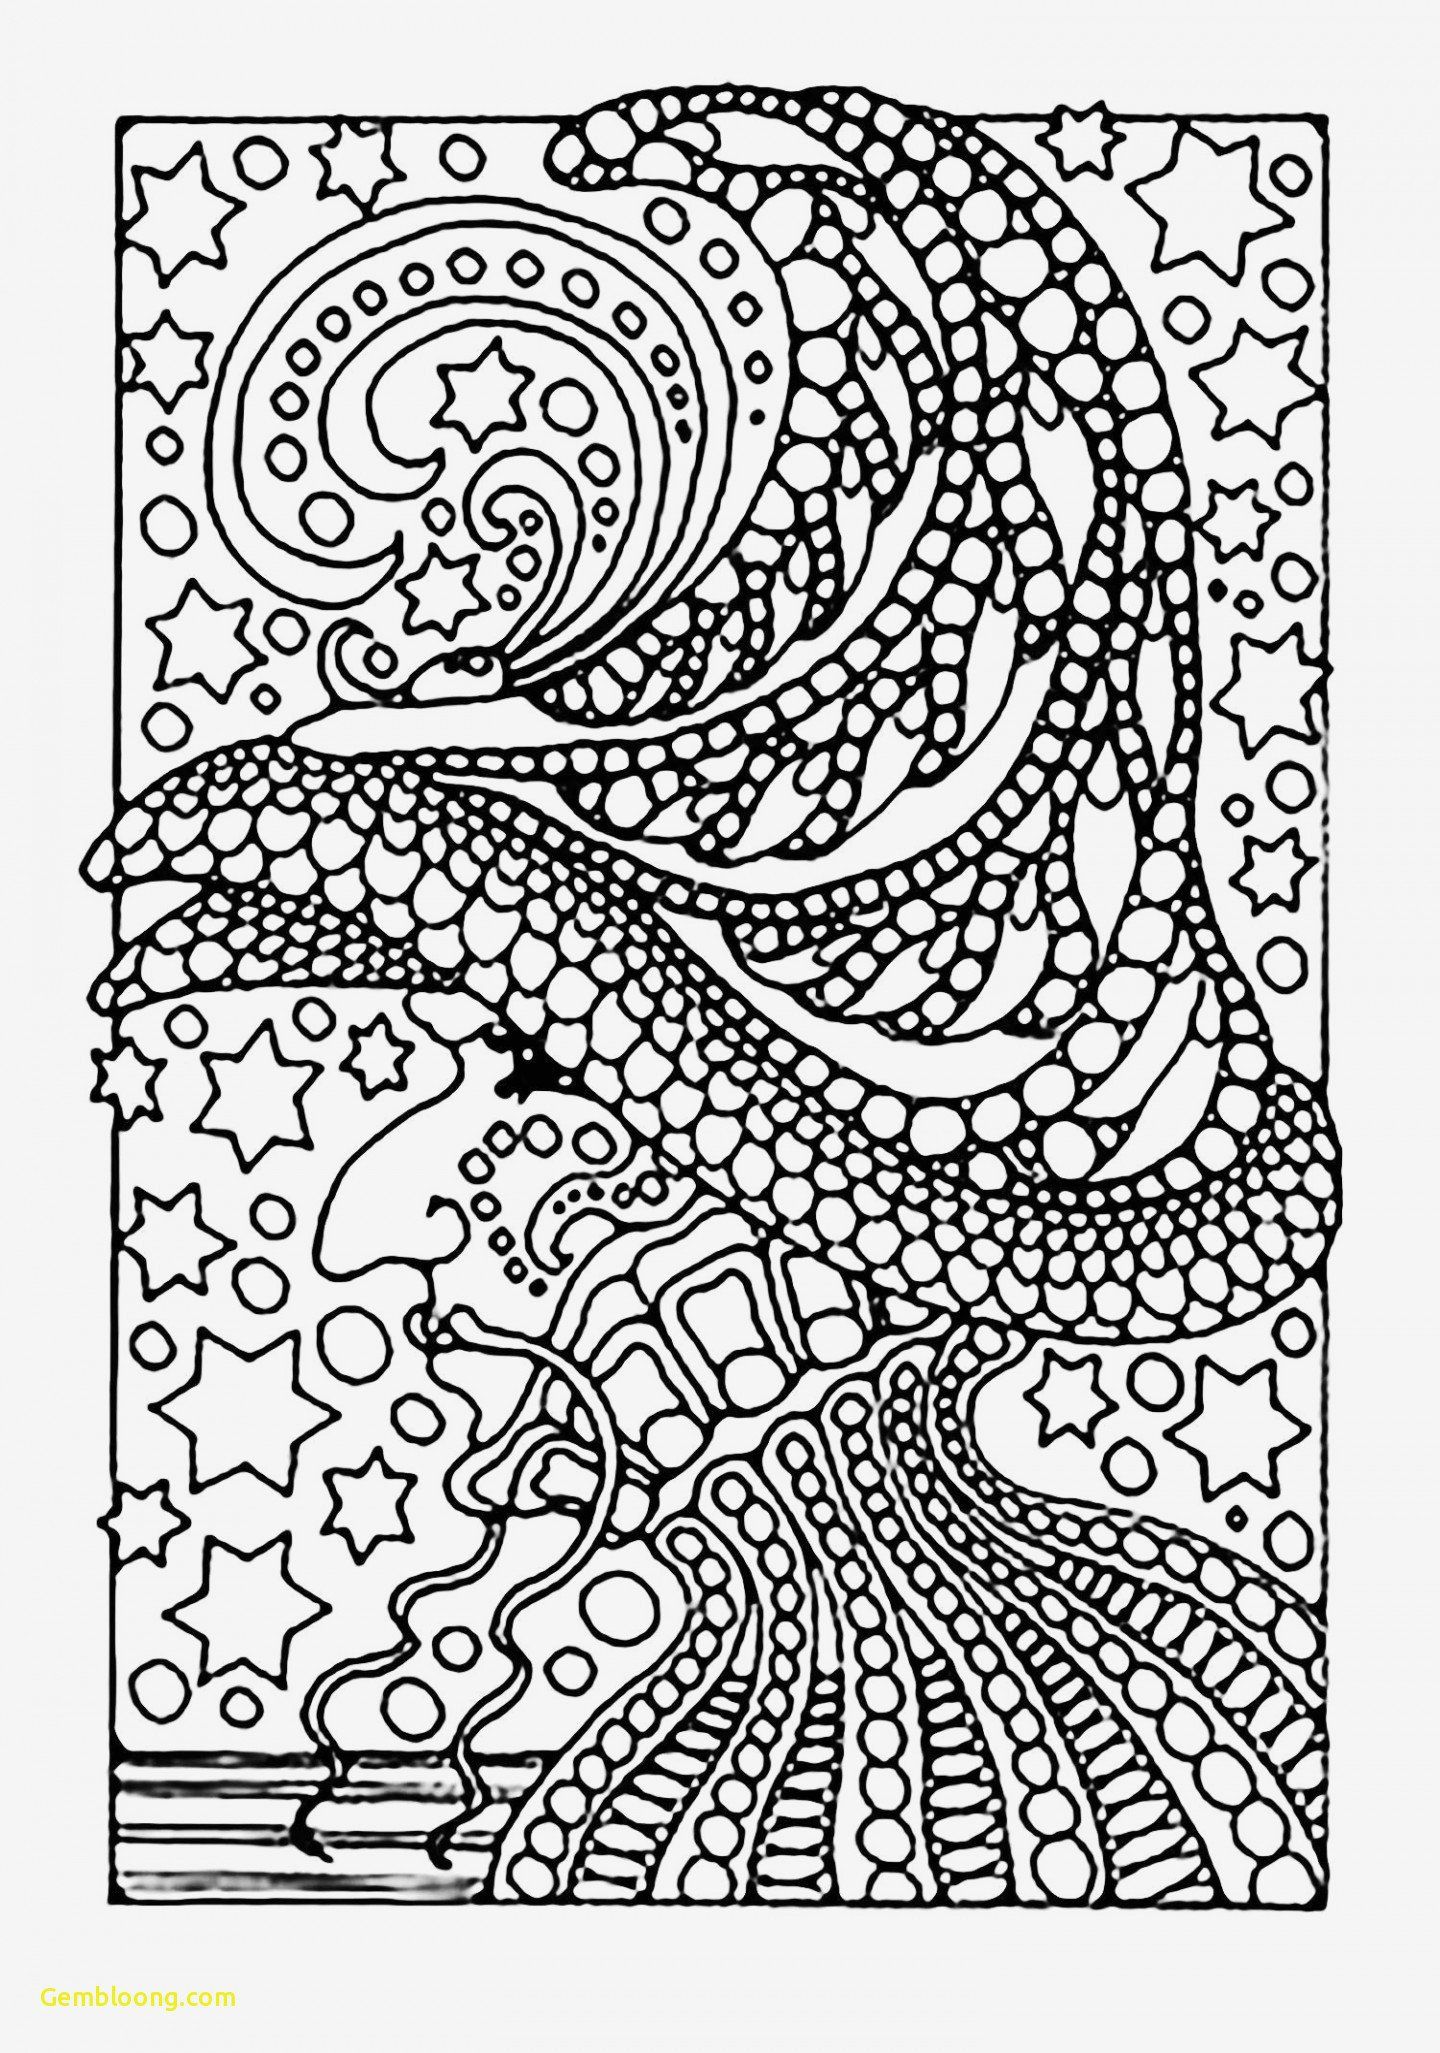 Free Christian Coloring Pages Coloring Pages Free Christian Coloring Pages Unique Witch Coloring Pages Coloring Pages Inspirational Heart Coloring Pages